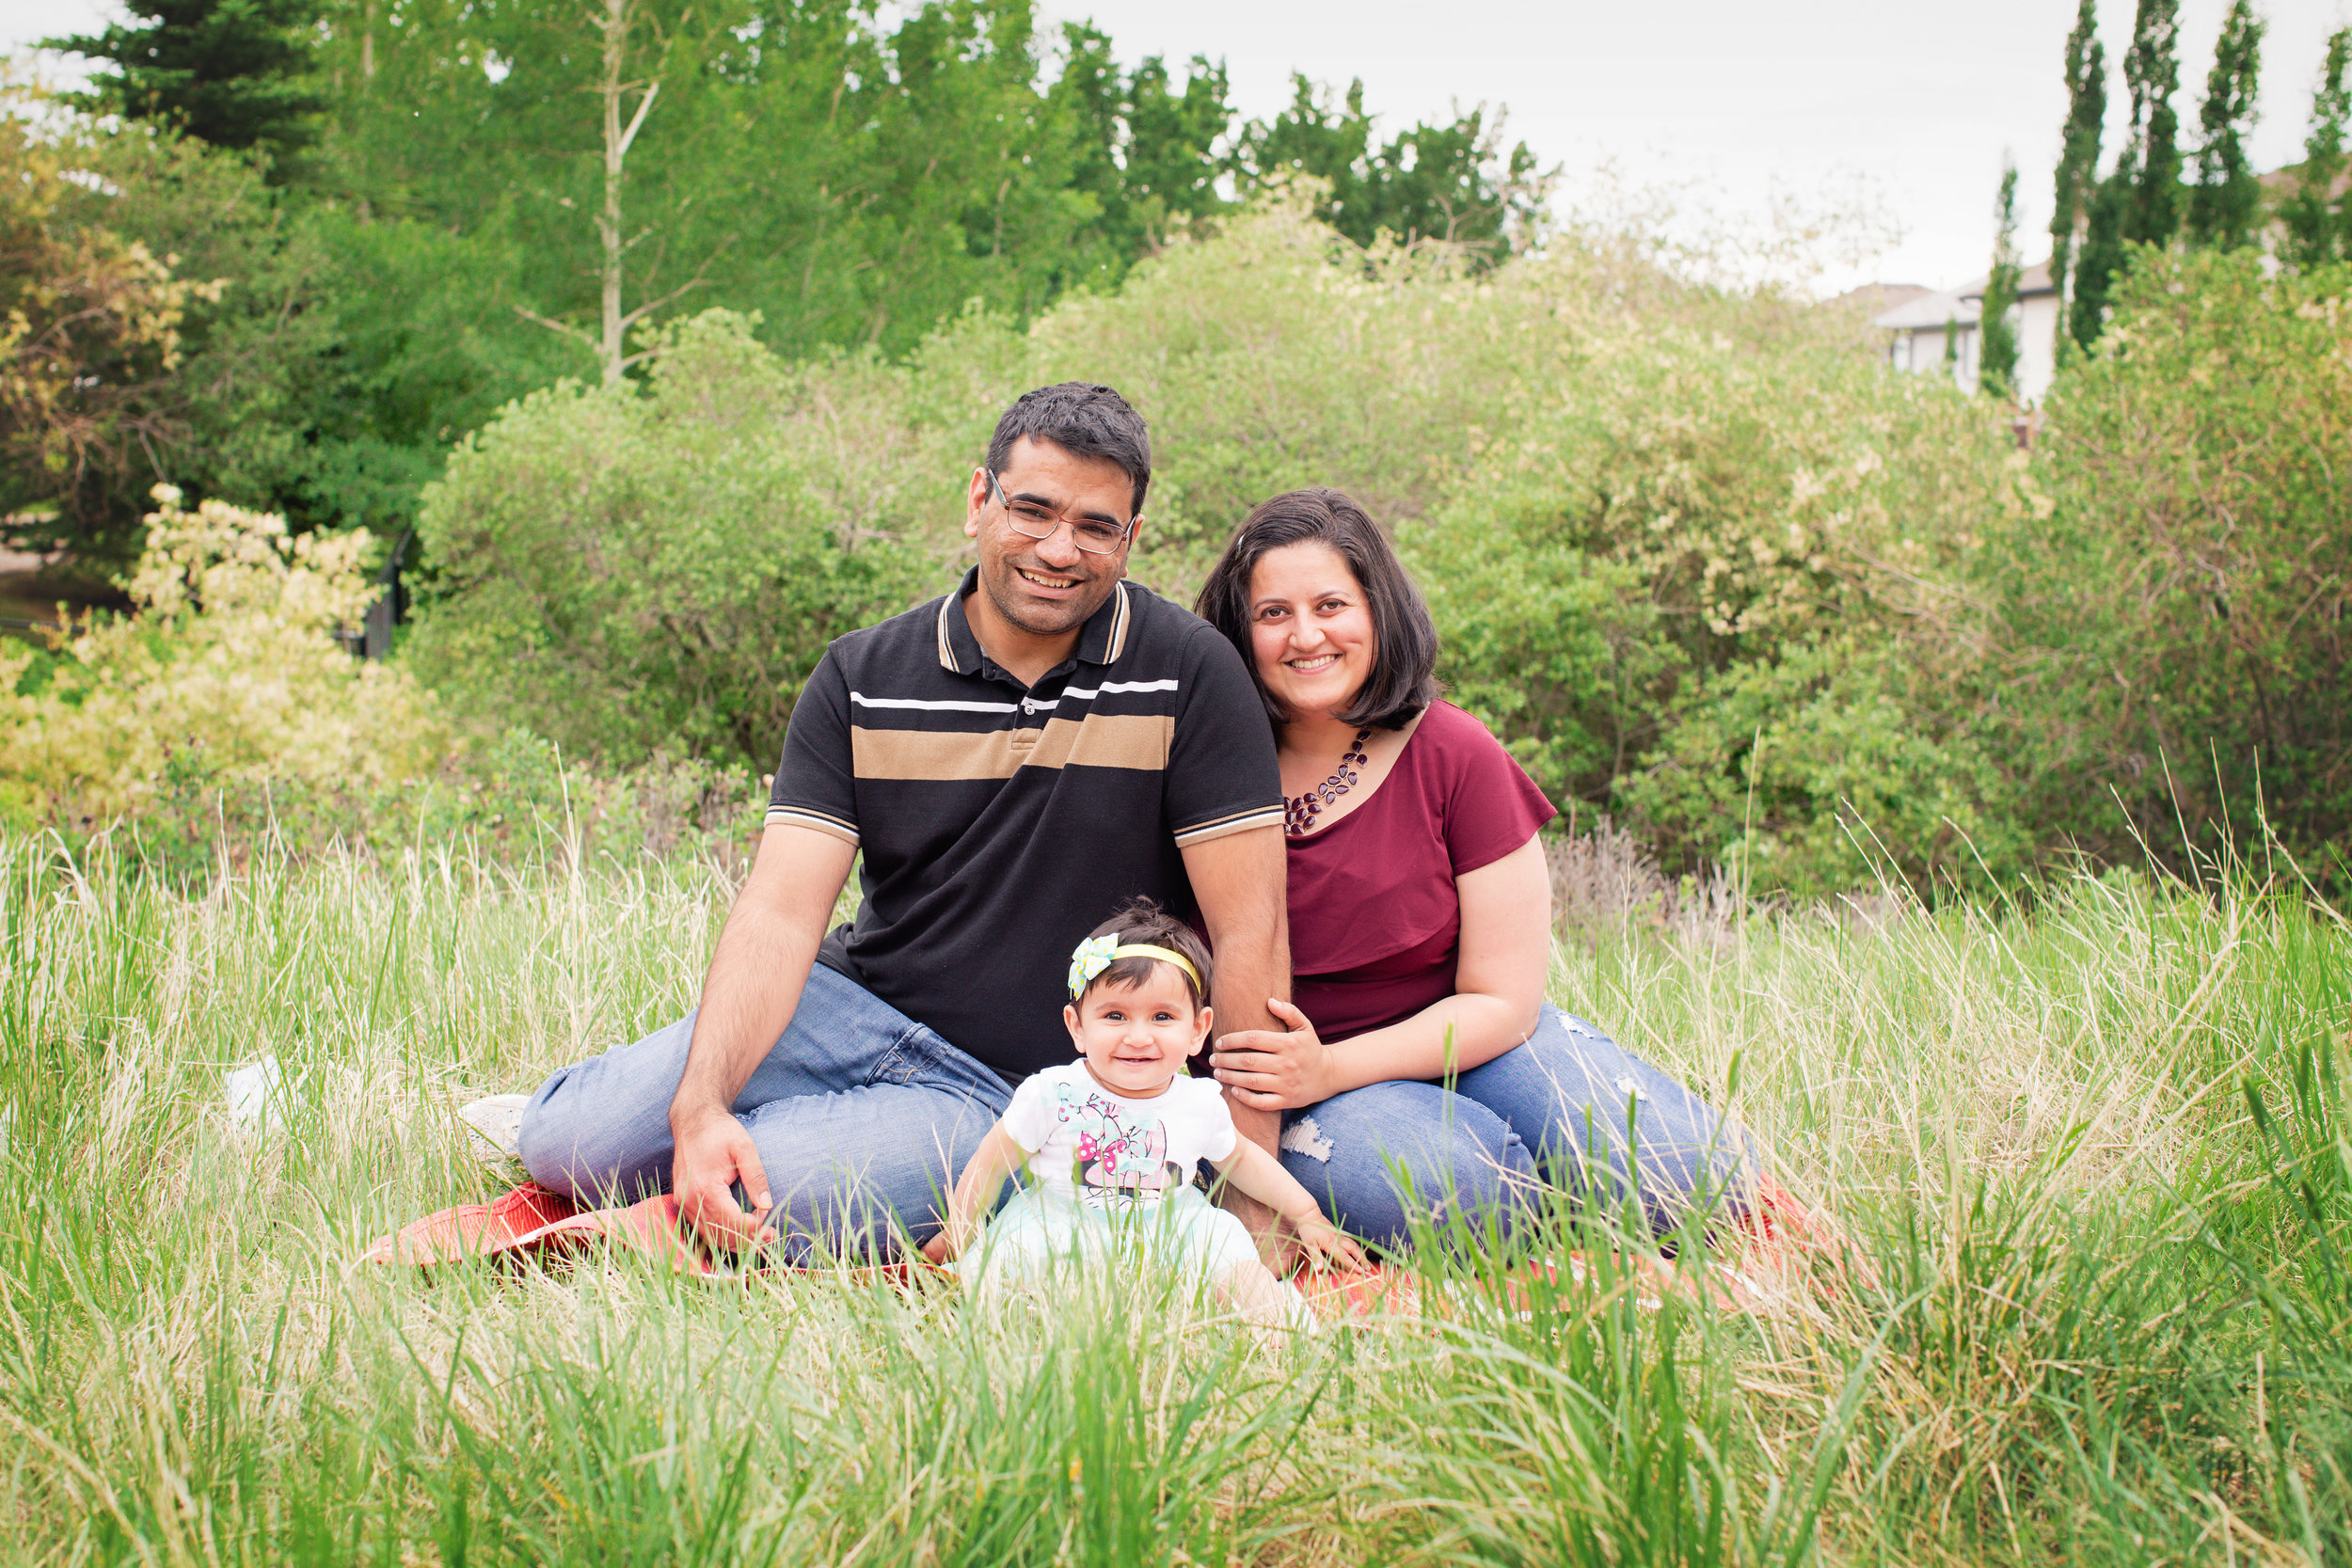 Family shoot with a one year old birthday girl. Calgary family photographer. Milashka Photography.